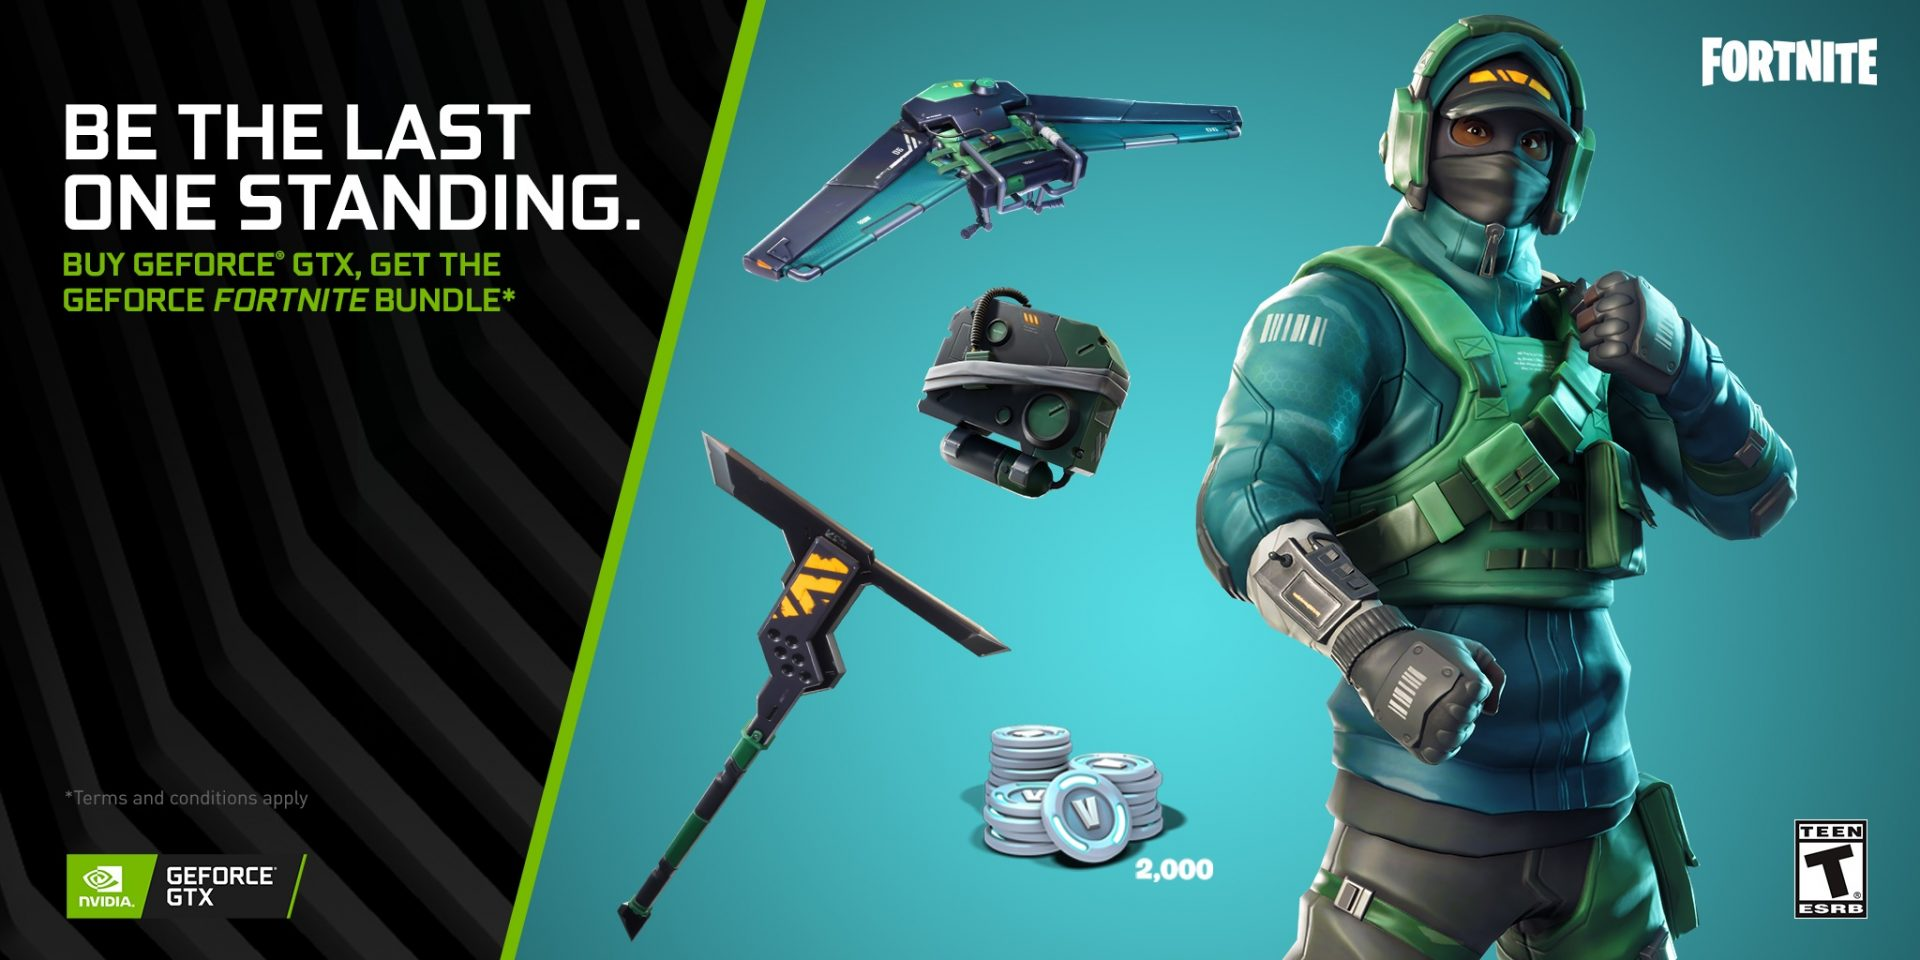 Buy GeForce GTX, Get Fortnite Counterattack Set and 2000 V